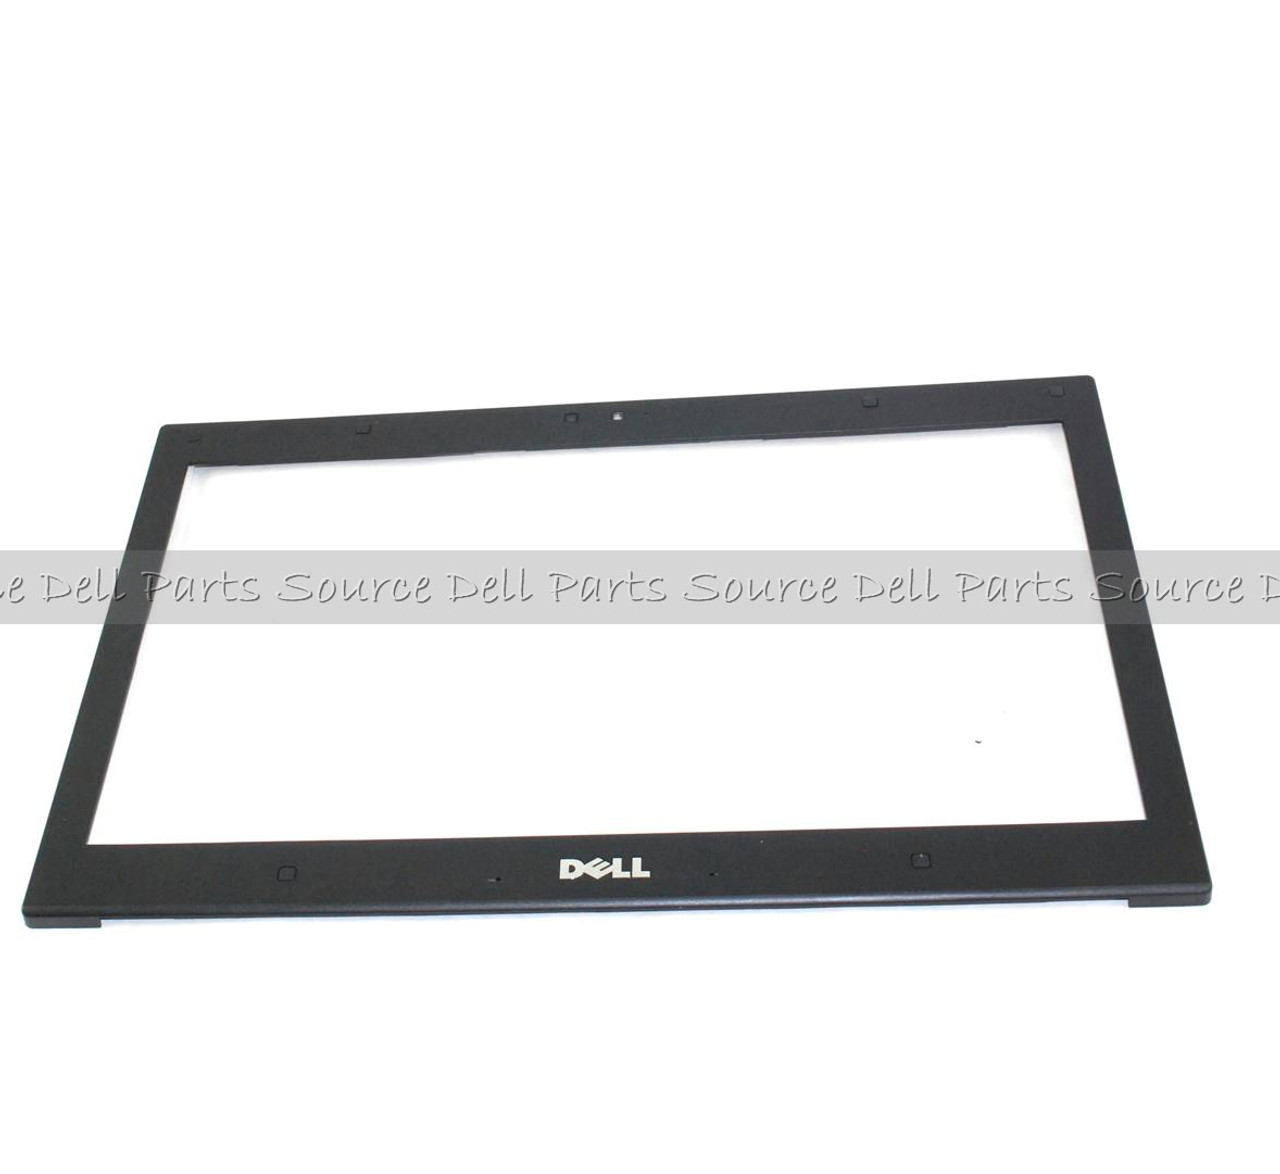 Dell Latitude E4310 LCD Front Trim Bezel With Camera Window - C11HN